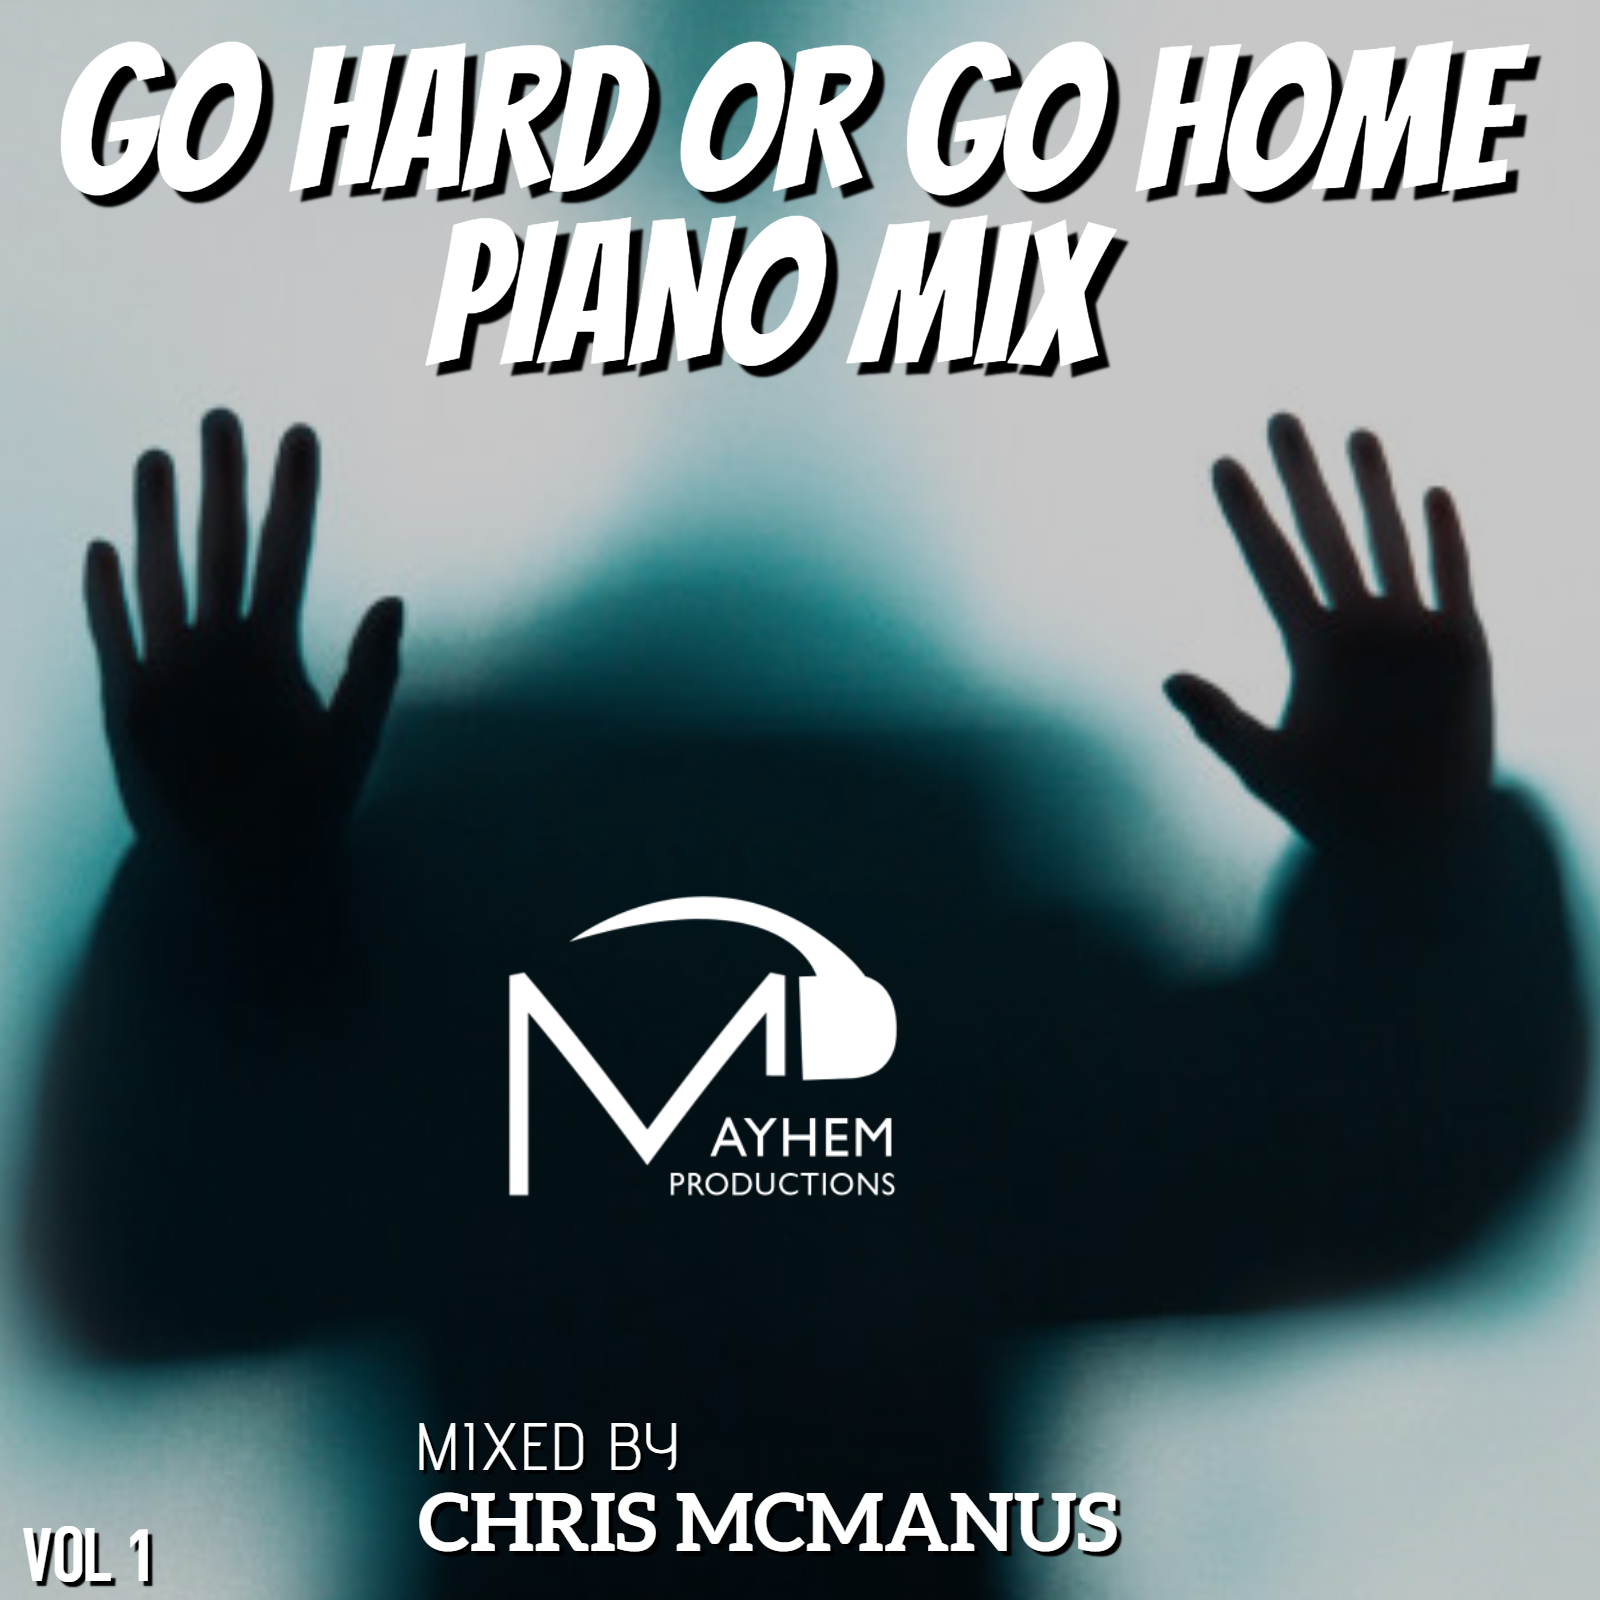 GO HARD OR GO HOME PIANO MIX